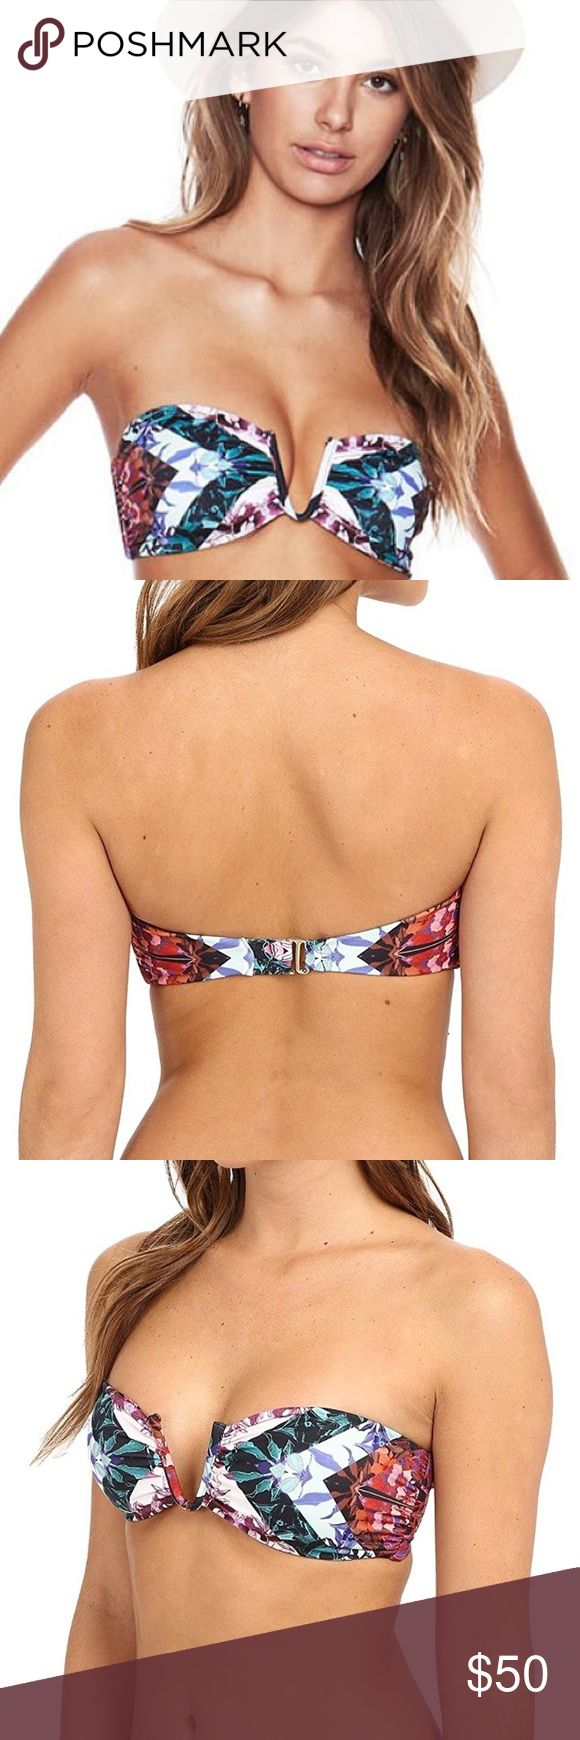 Beach Riot Diamond Back Frontier bikini top Awesome print bikini top in size Large by Beach Riot. Hook closure in the back. Flexible boning on sides for secure fit. In like new condition because I wore once and washed but never again. Looks great with multiple colored bikini bottoms (solid black, solid white, solid green, etc). No damage, no signs of wear, no stretch or pull of the material. Comes from a smoke free home. Can be reversible if you don't mind the tag showing or if you choose to…